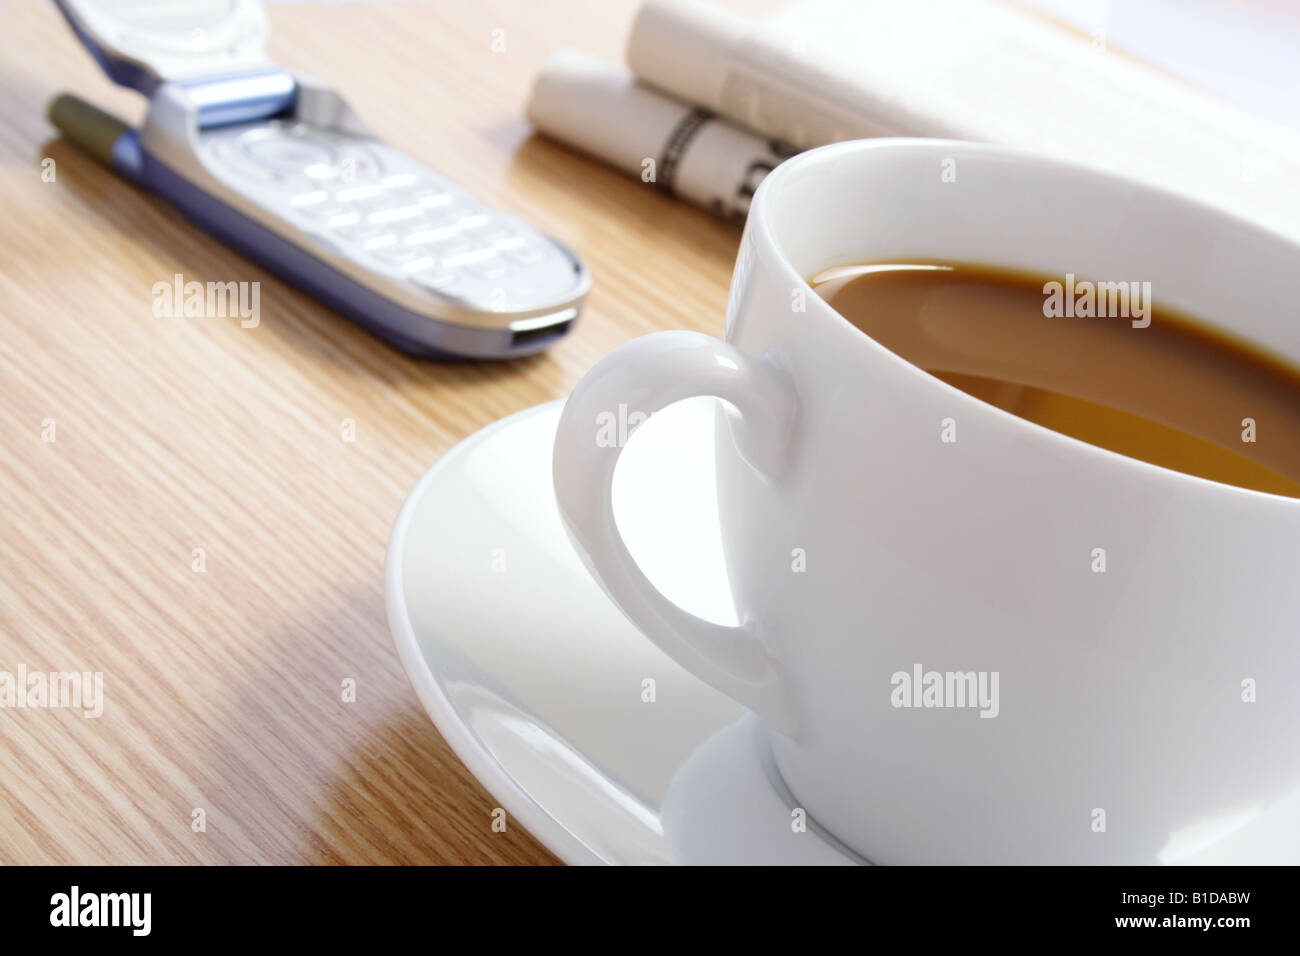 Coffee Cellphone and Newspaper on Desk Stock Photo